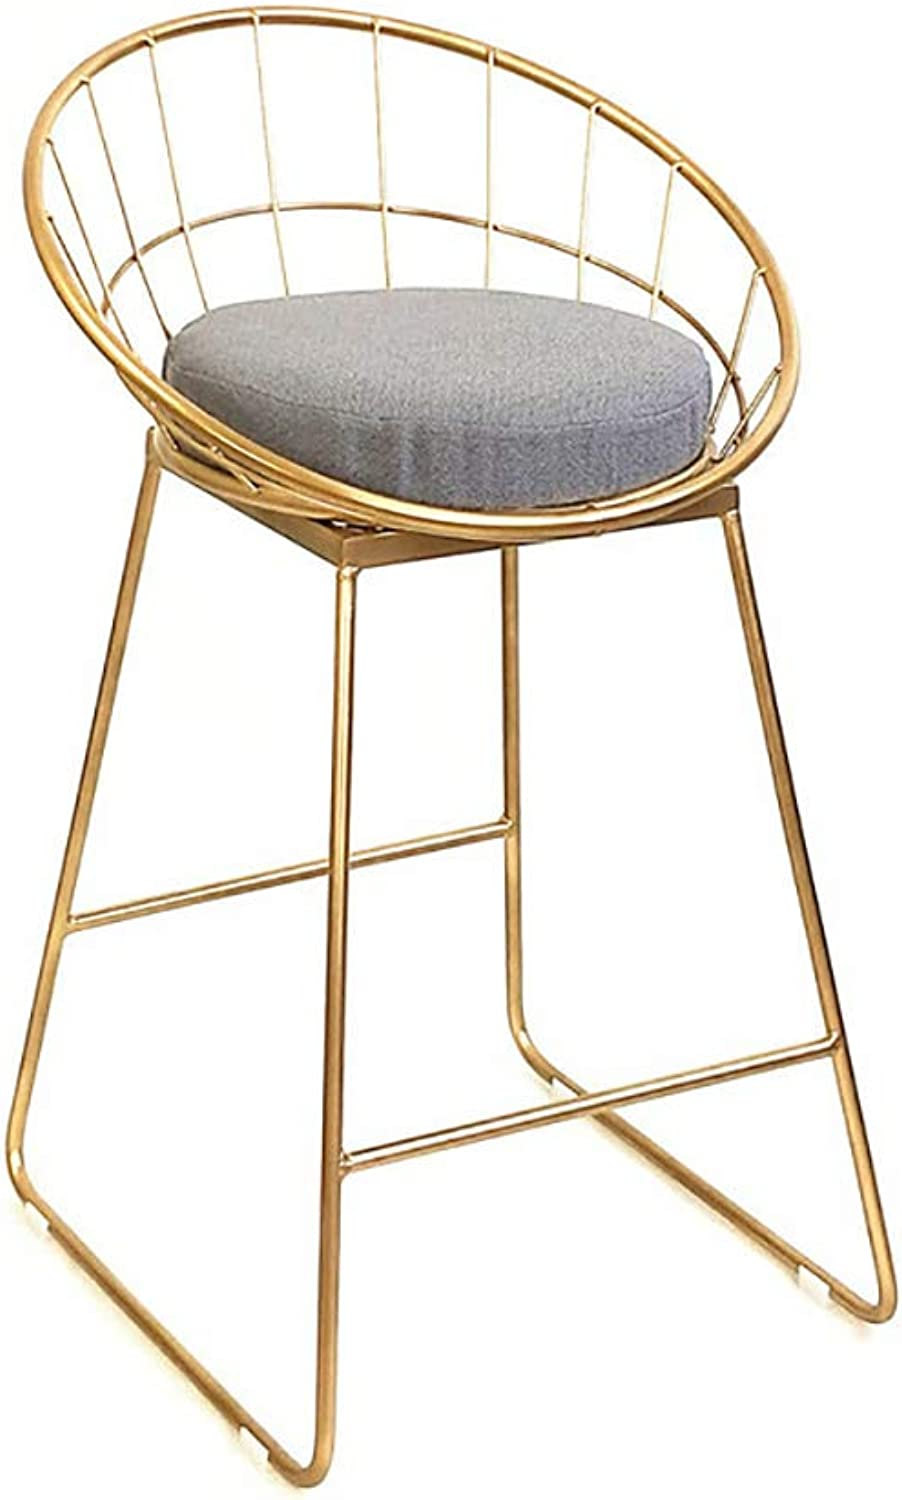 Modern Bar Stools, Simple Metal Wire Bar Chairs with Back and Linen Cushion, Pub Kitchen Dining Chair, High Stool (gold),SittingHeight45cm